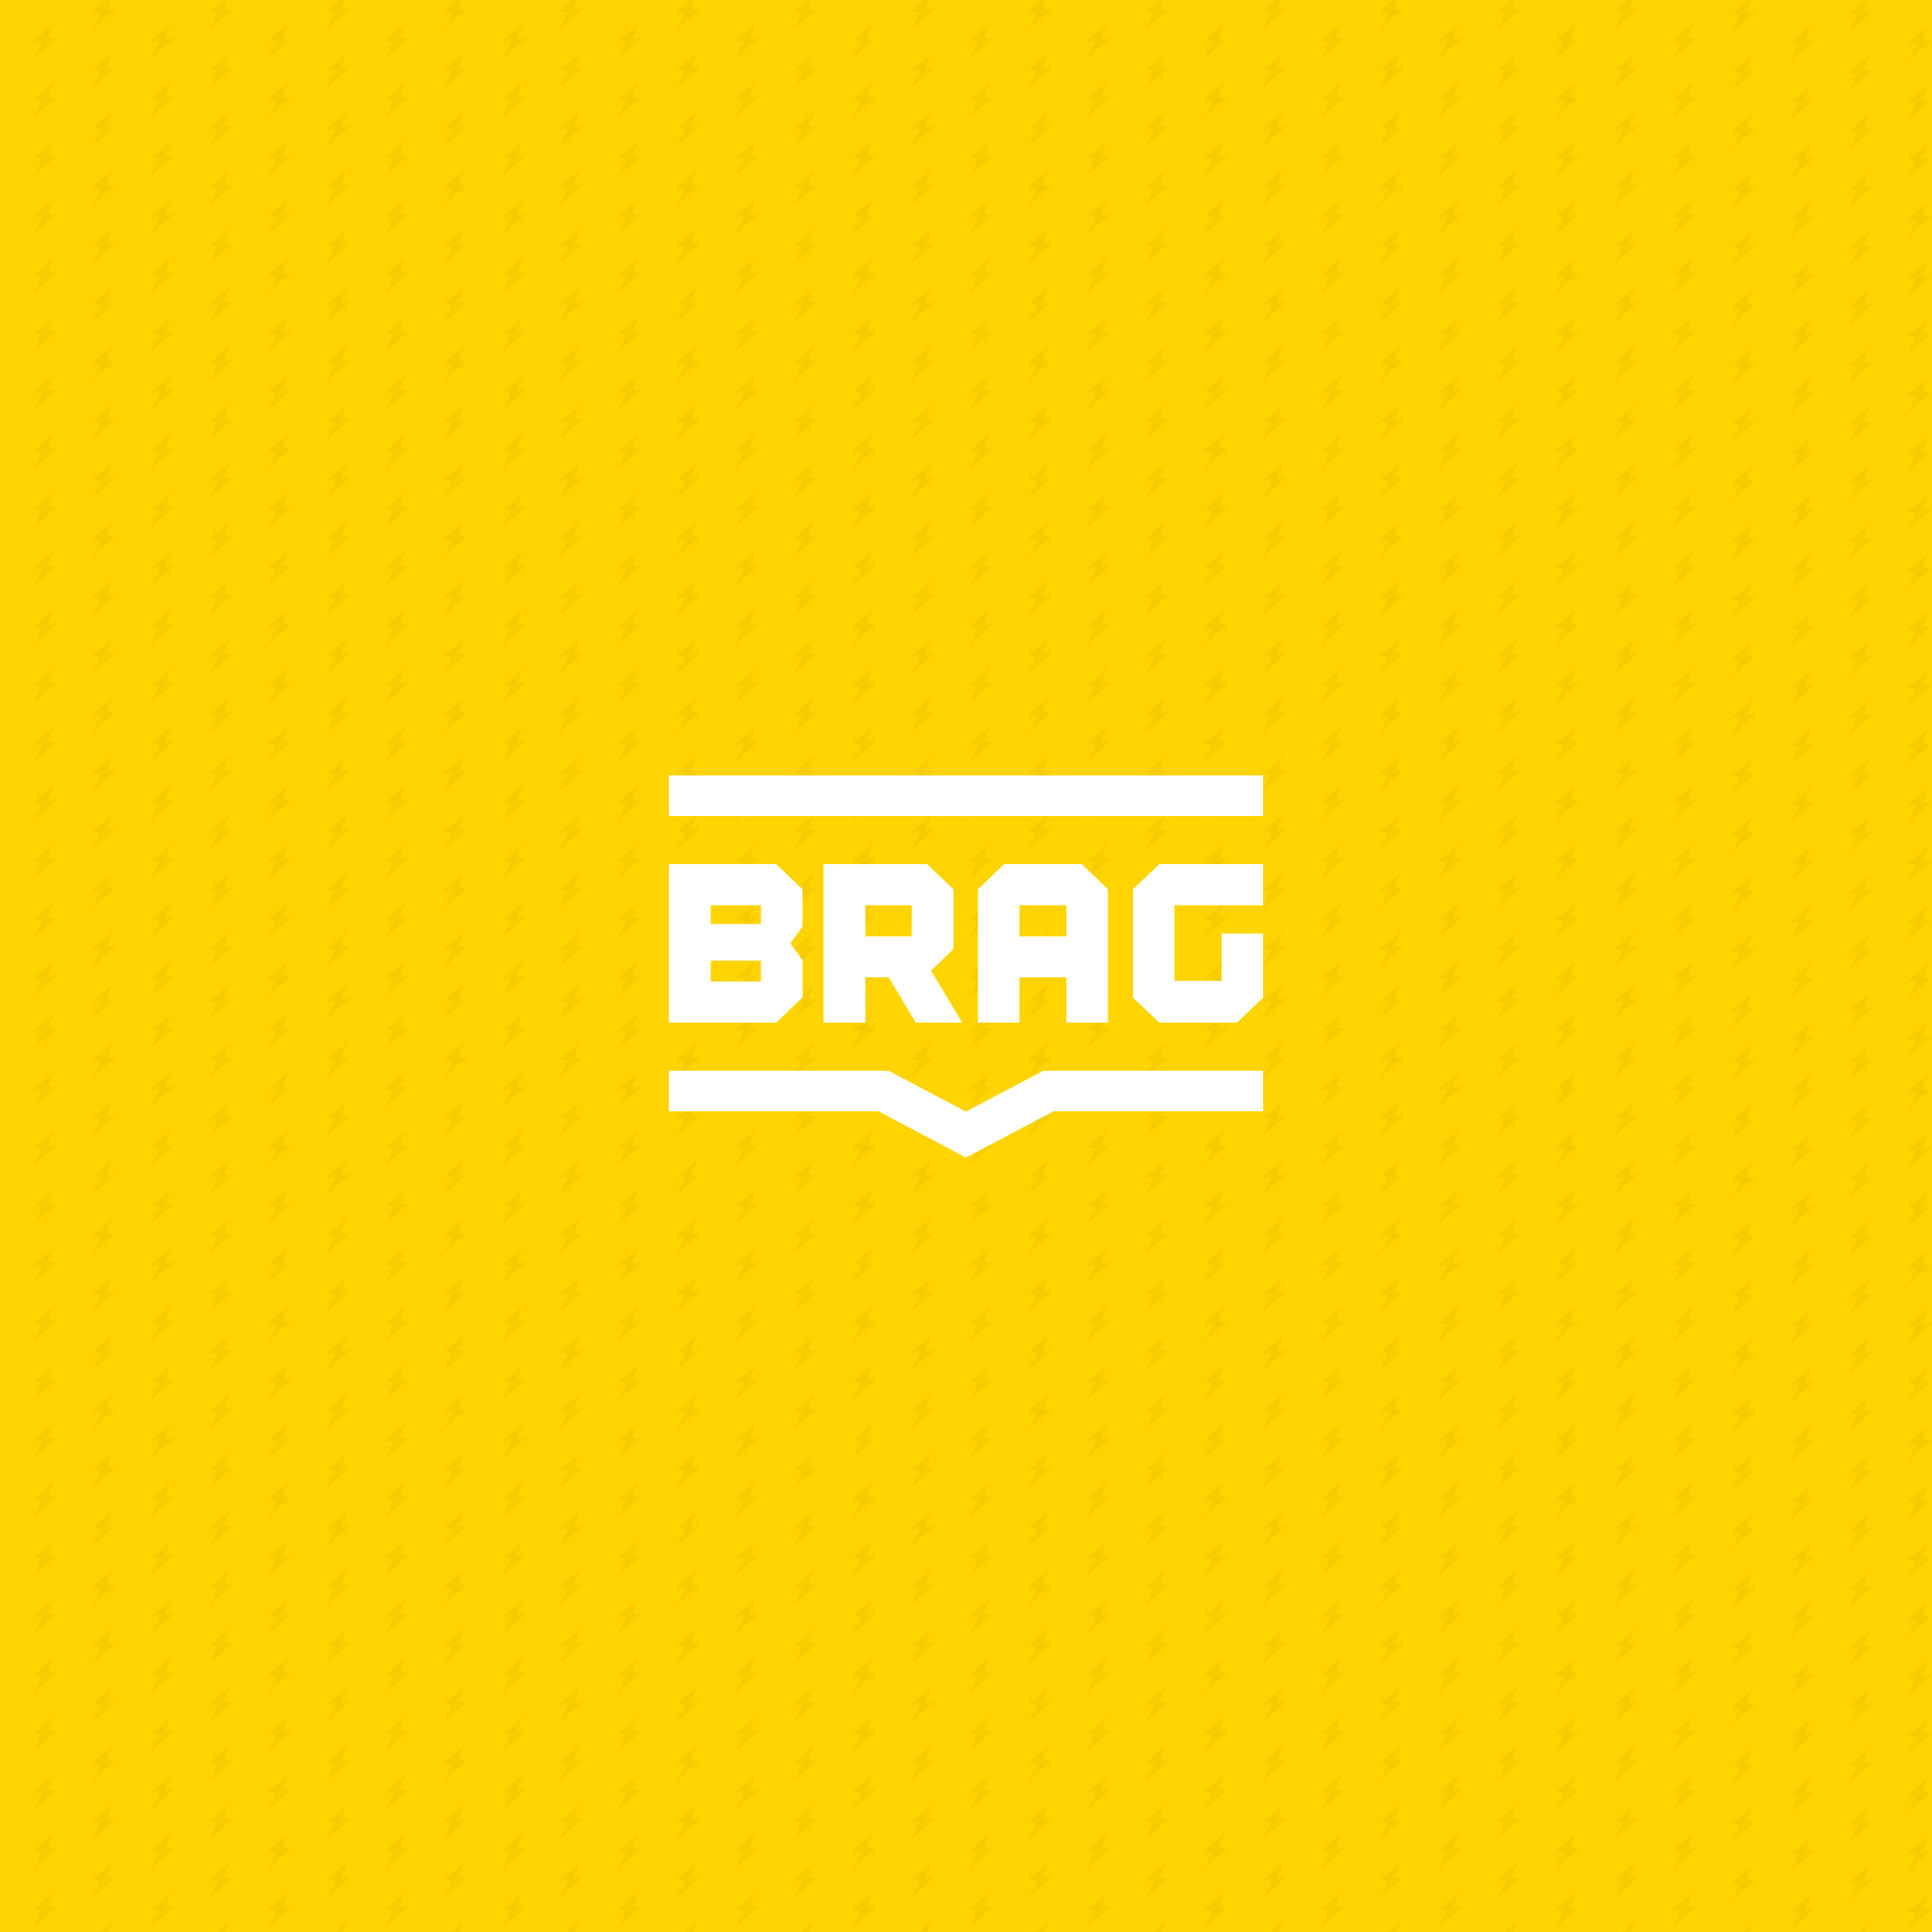 Iphone Built In Wallpapers Brag Wallpaper Trip Lee Official Site